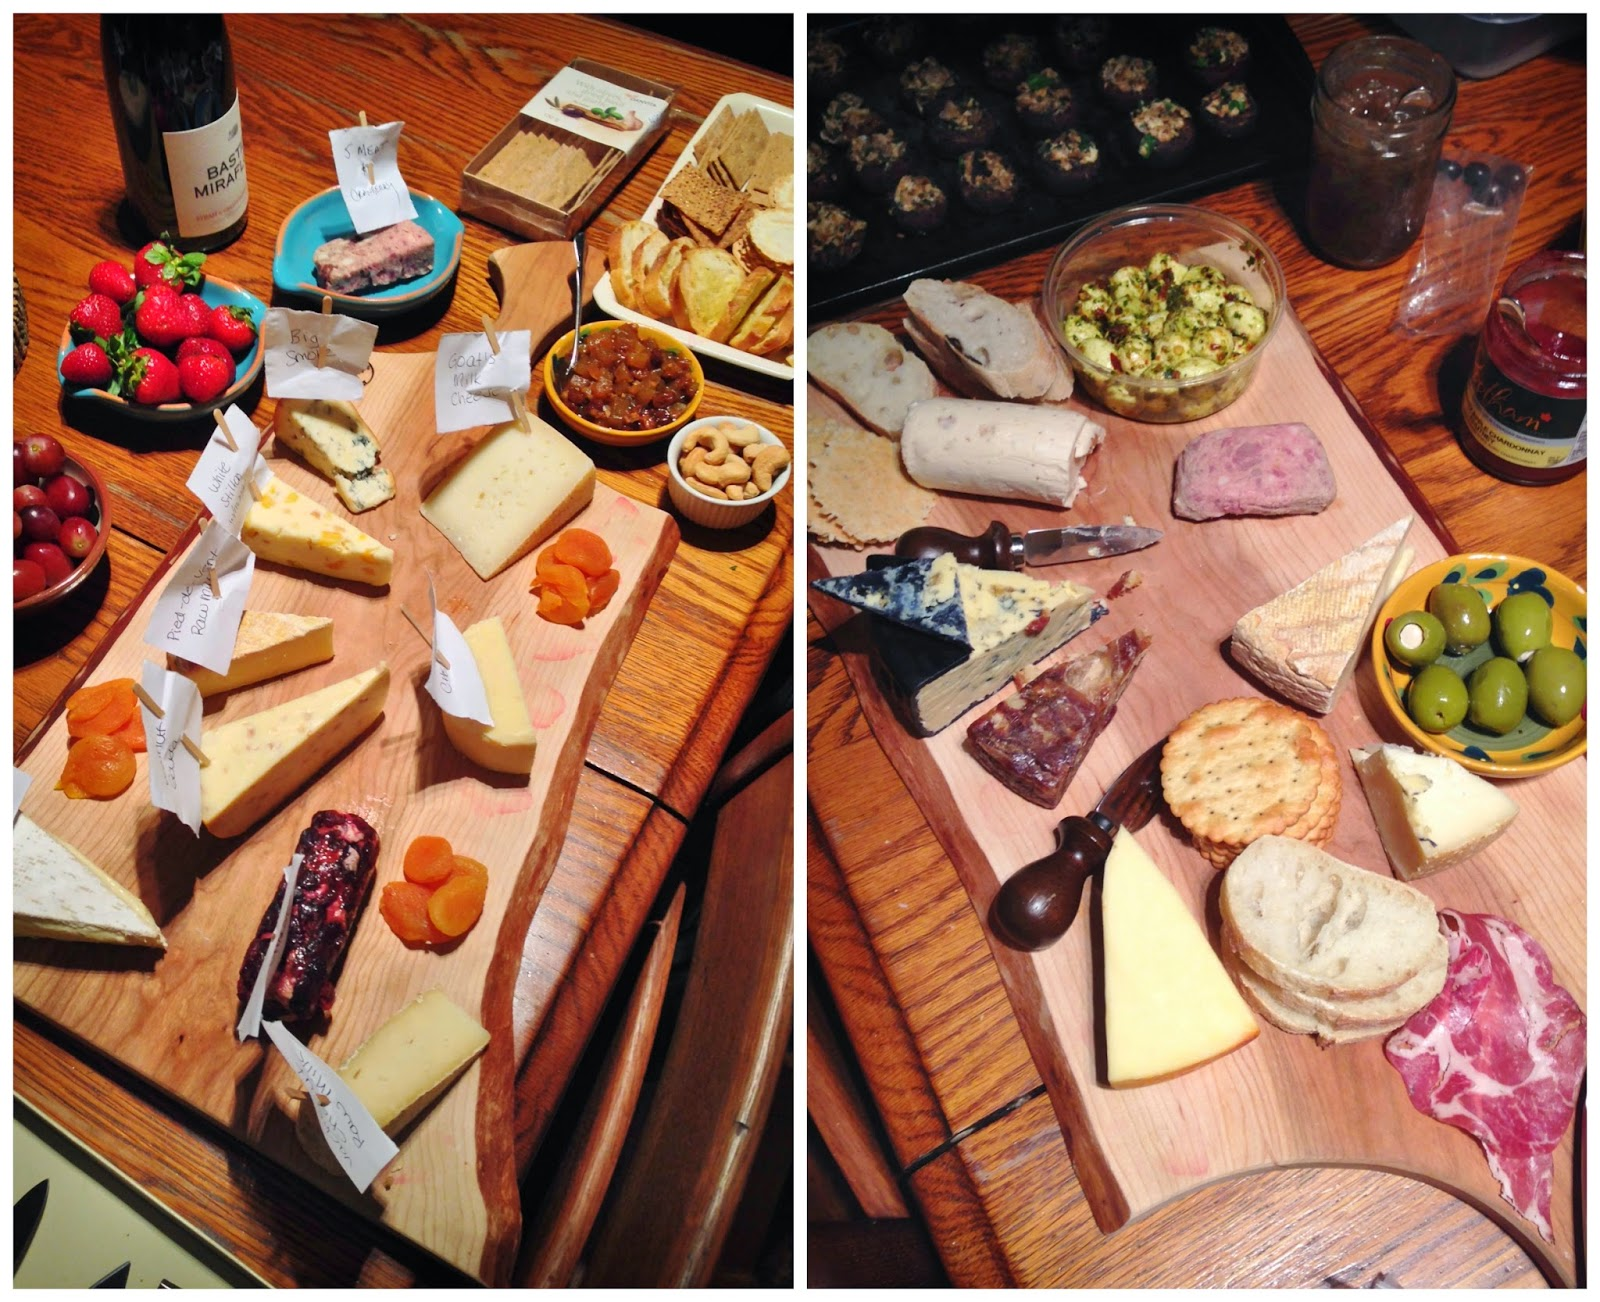 Cheese and charcuterie plates